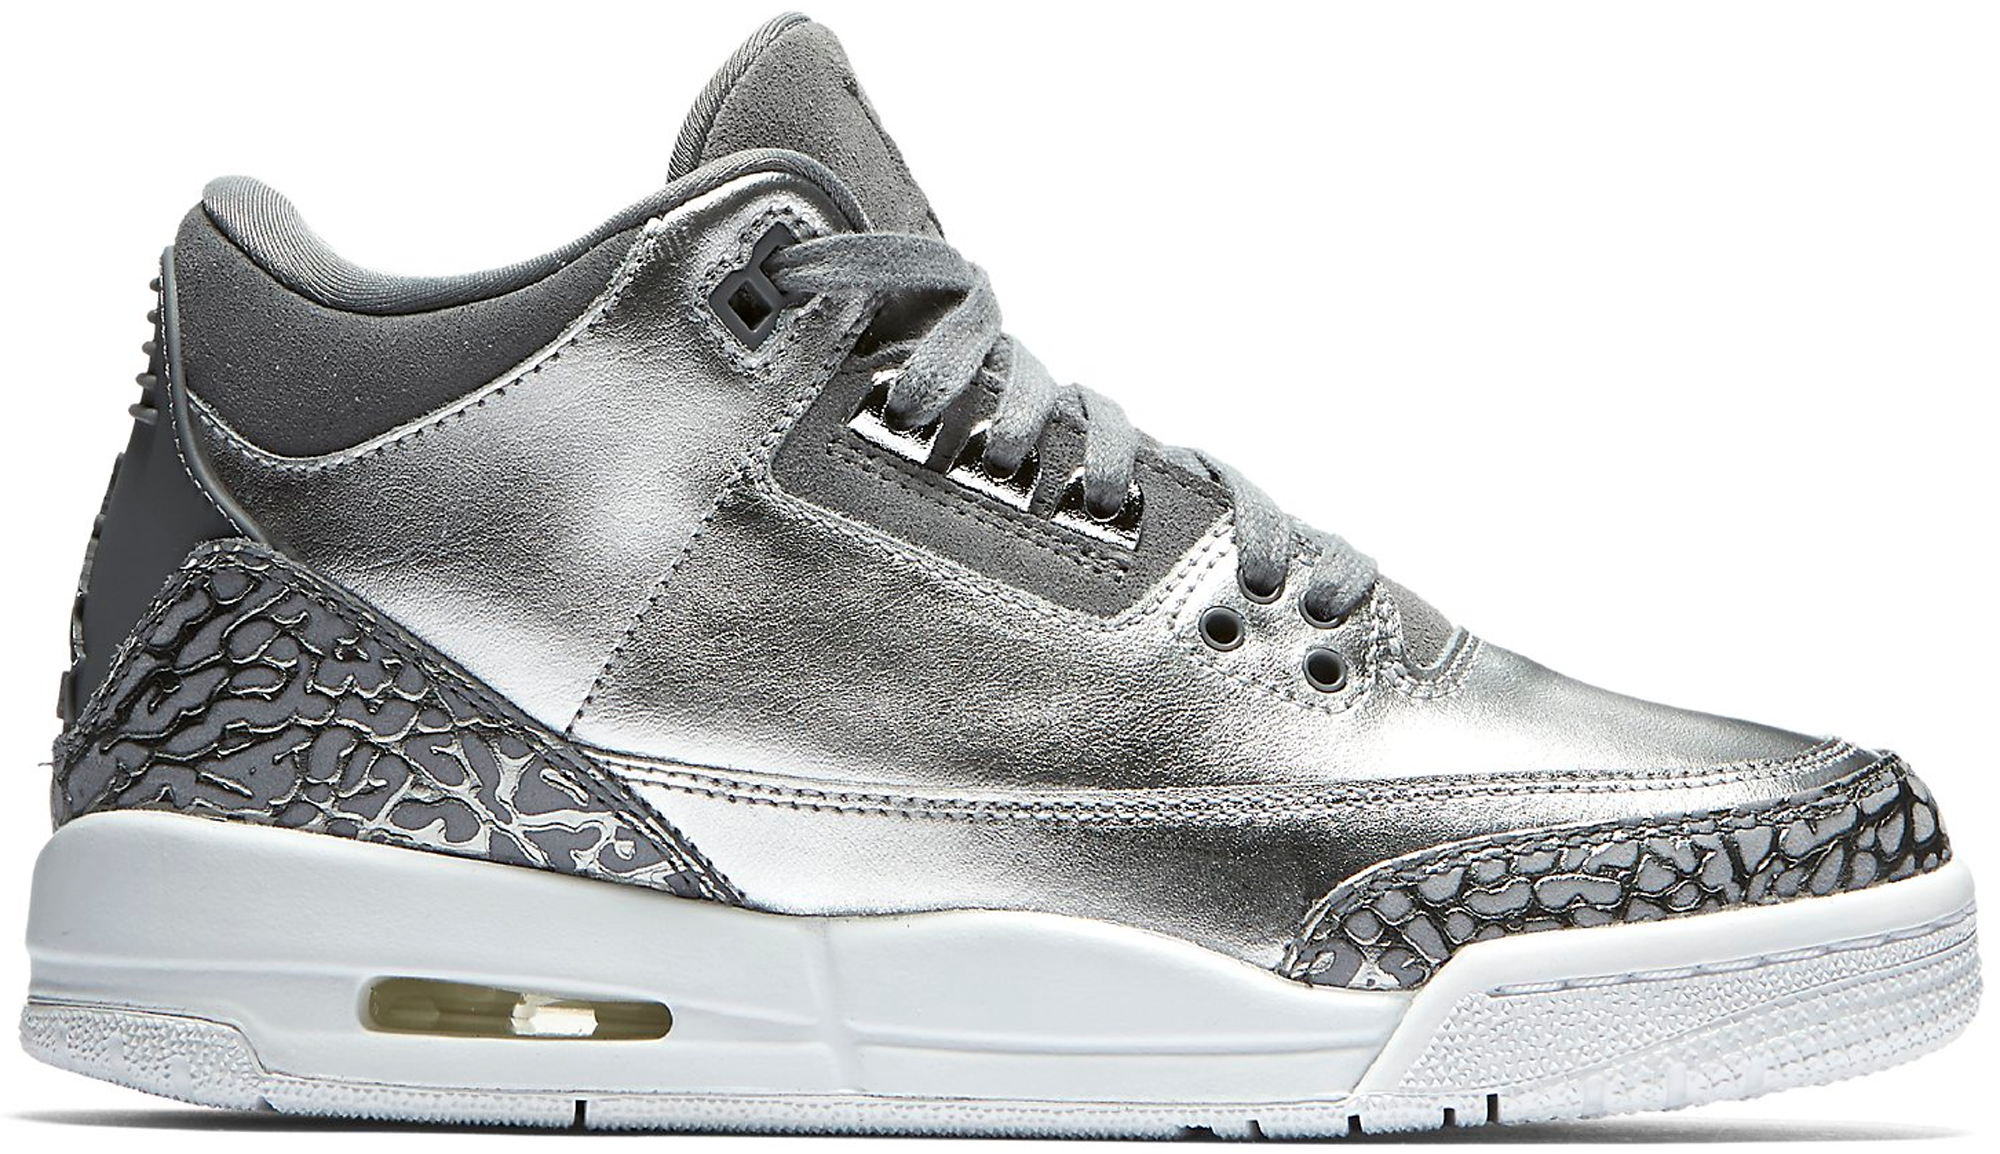 Jordan 3 Retro Premium Heiress Metallic Silver (GS)